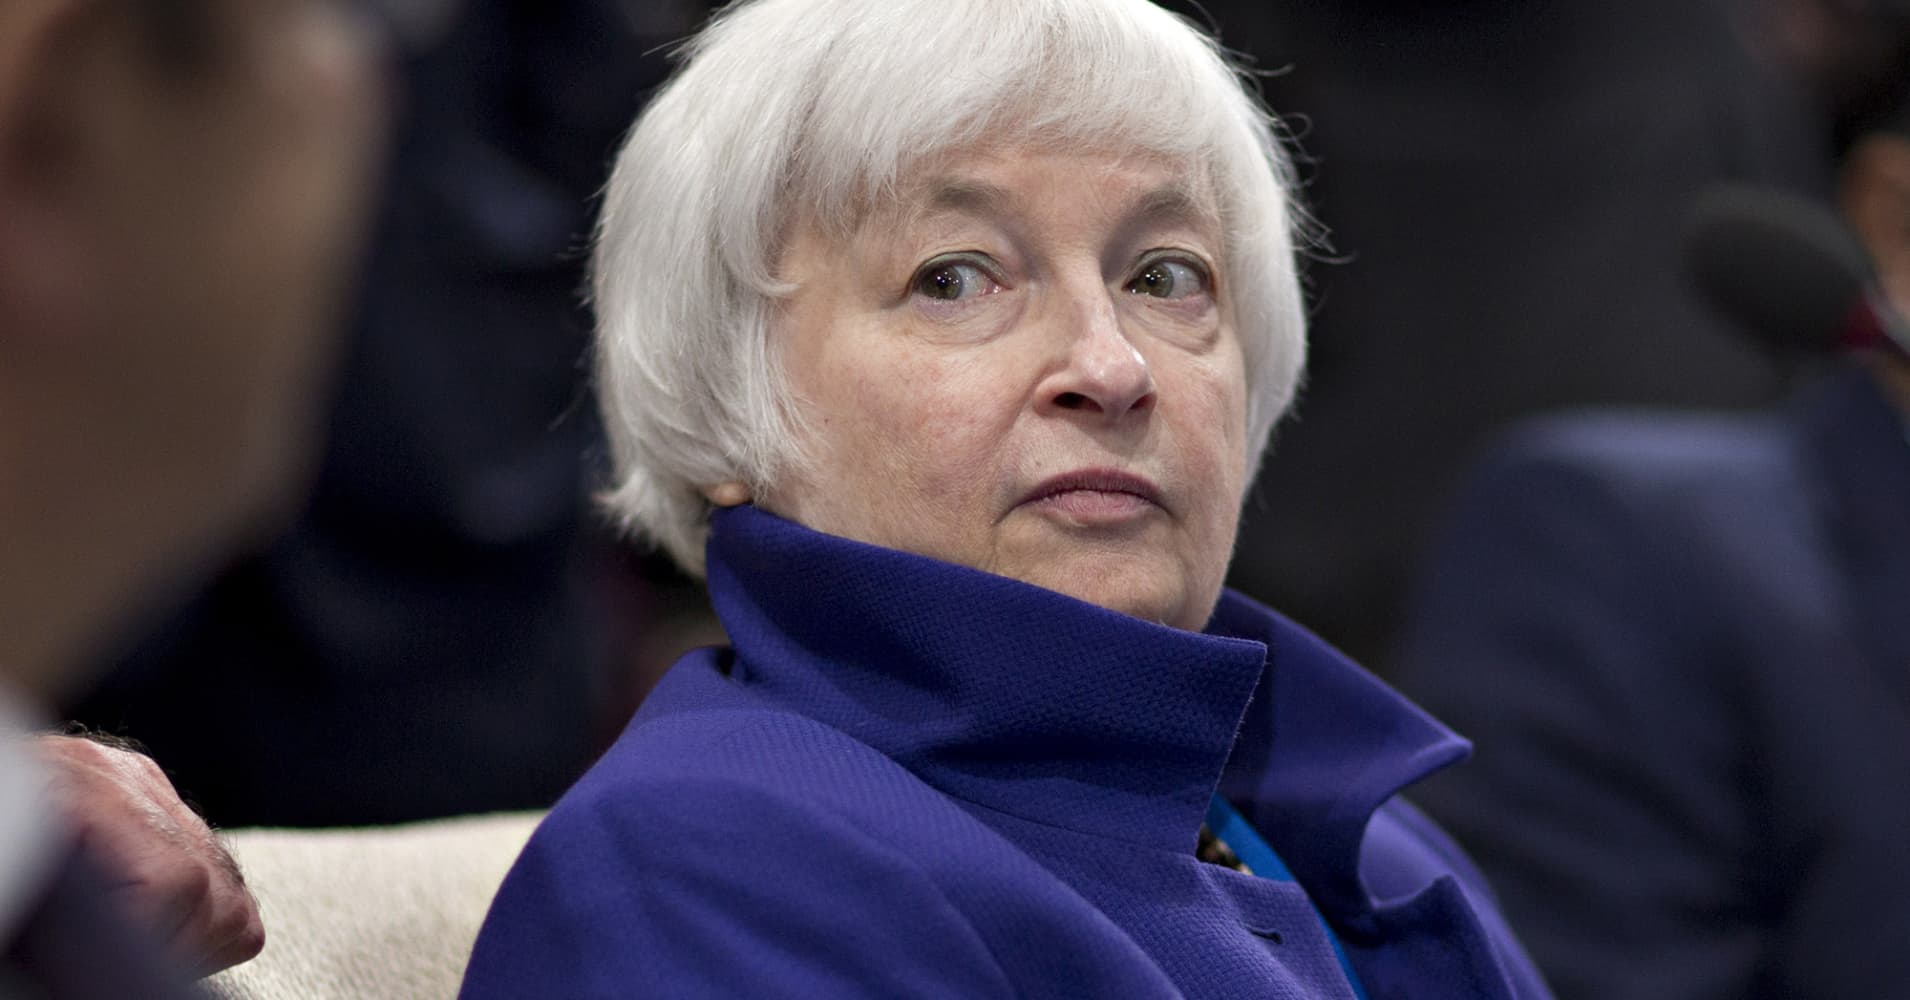 Top economists rip Fed, call for letting inflation run higher than normal